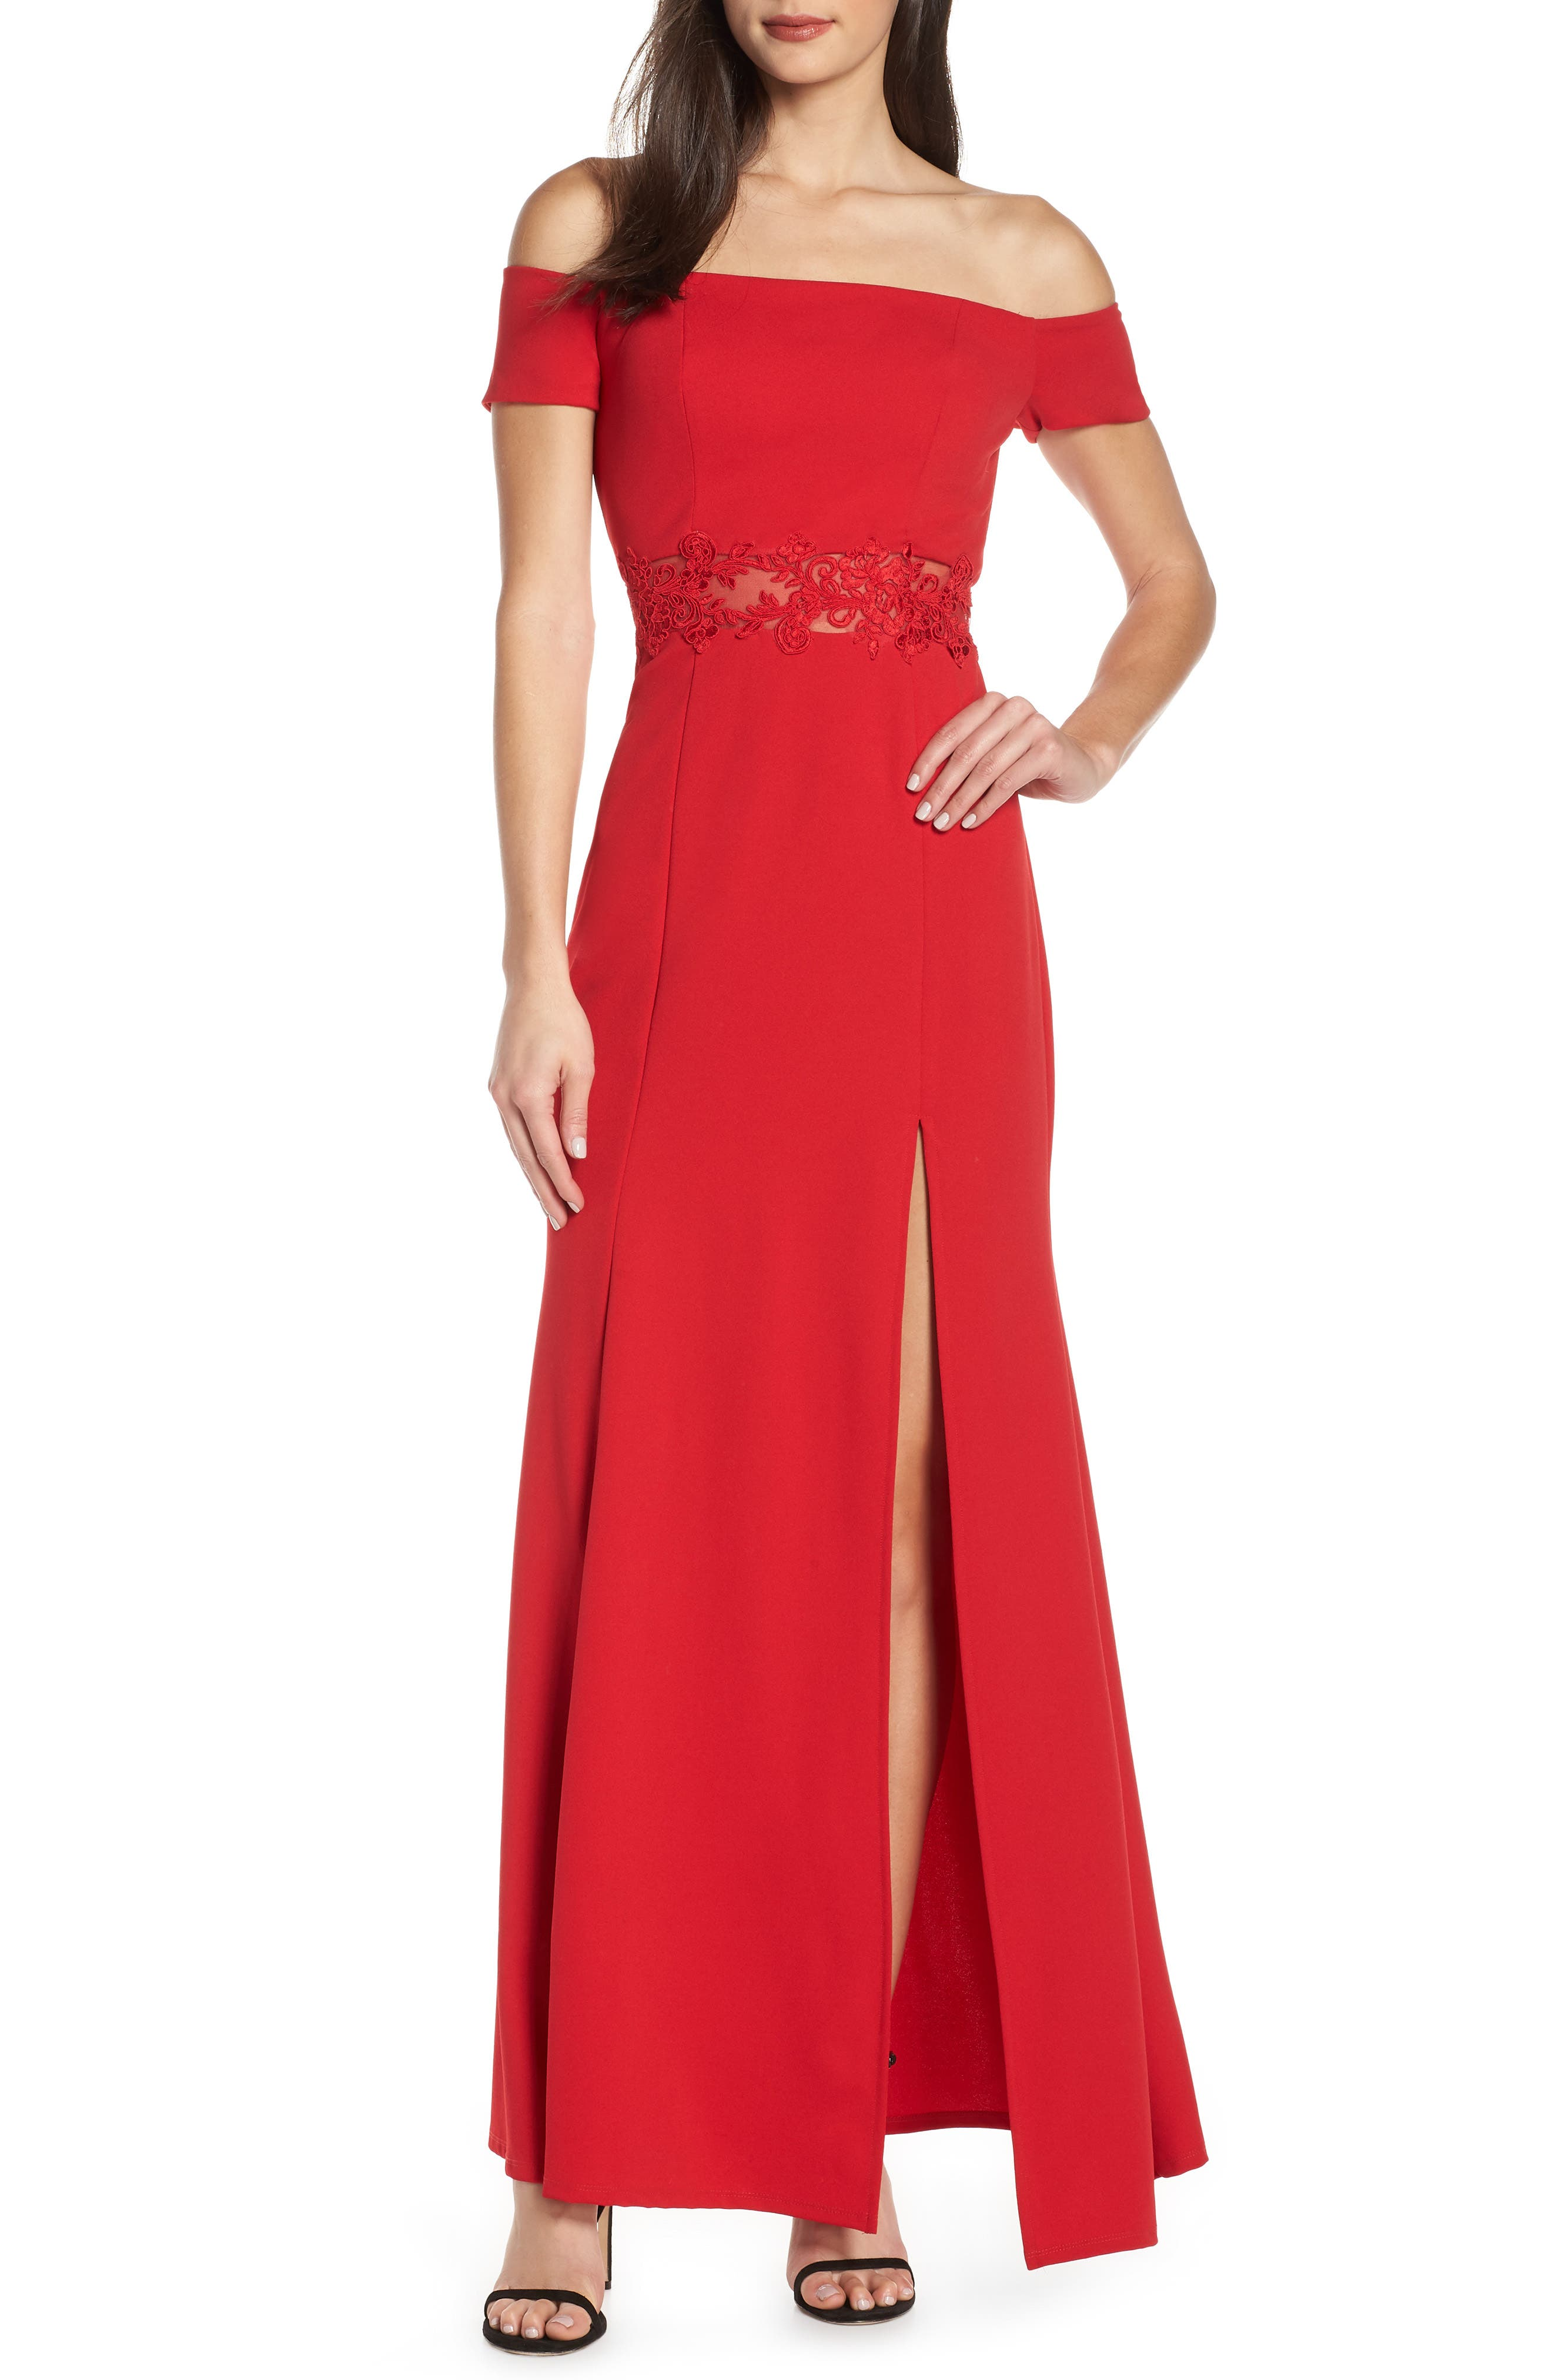 Sequin Hearts Off The Shoulder Scuba Crepe Evening Dress, Red